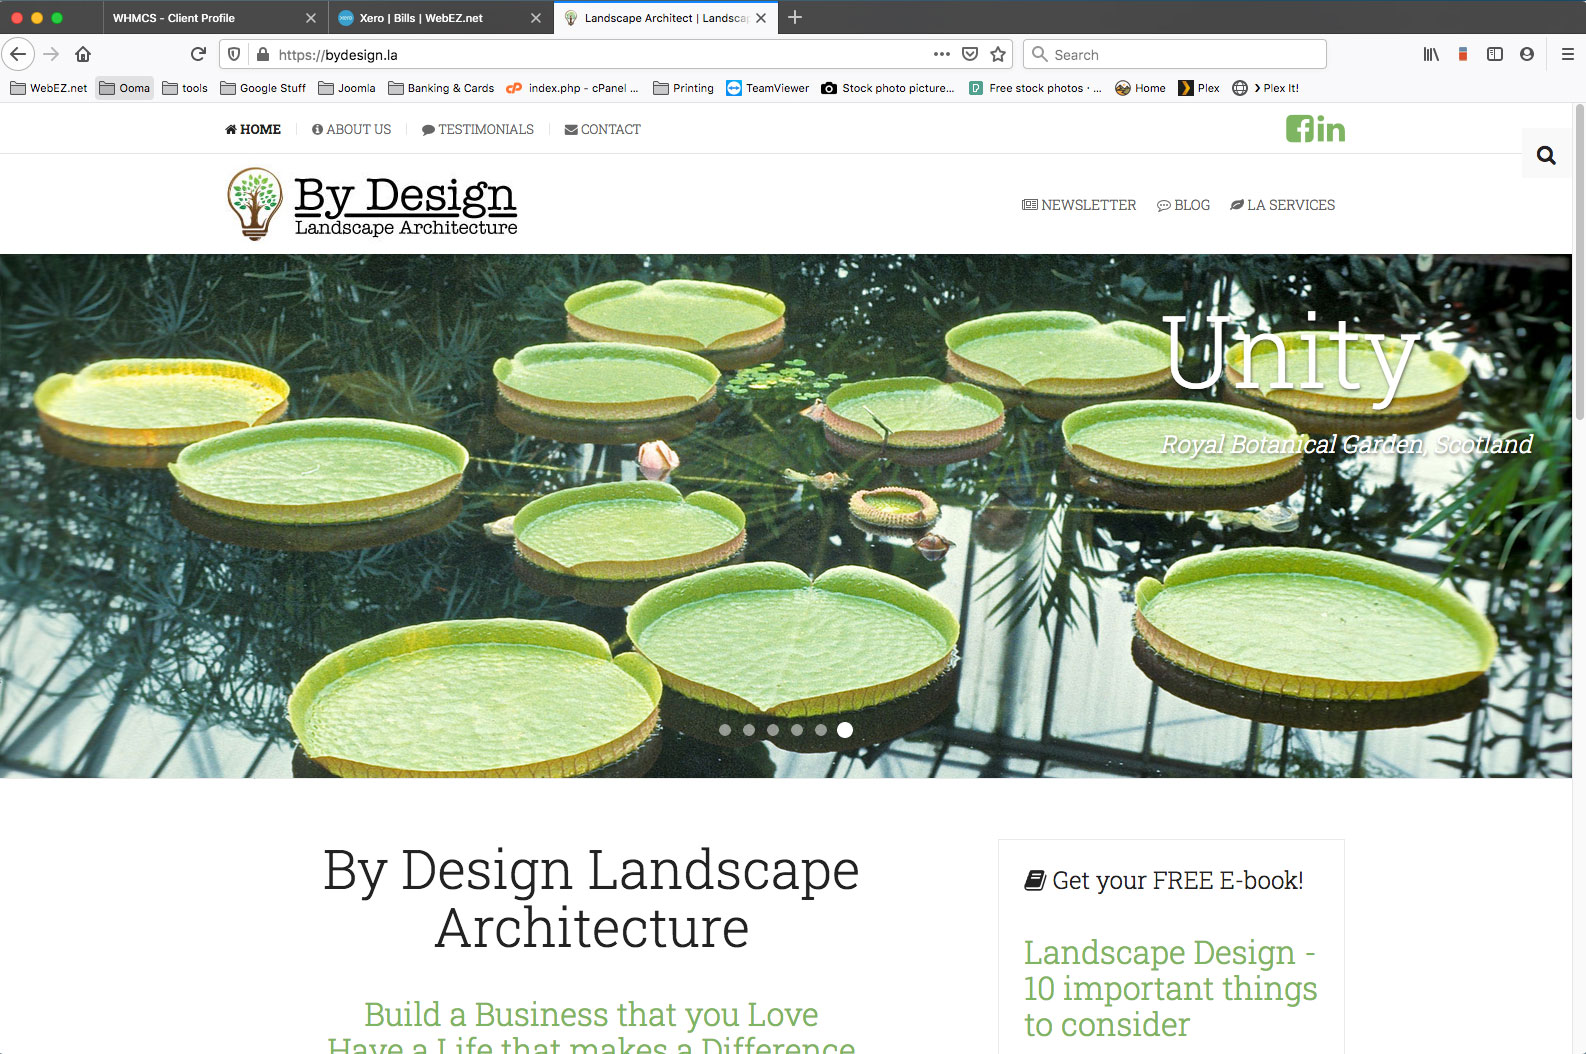 By Design Landscape Architecture